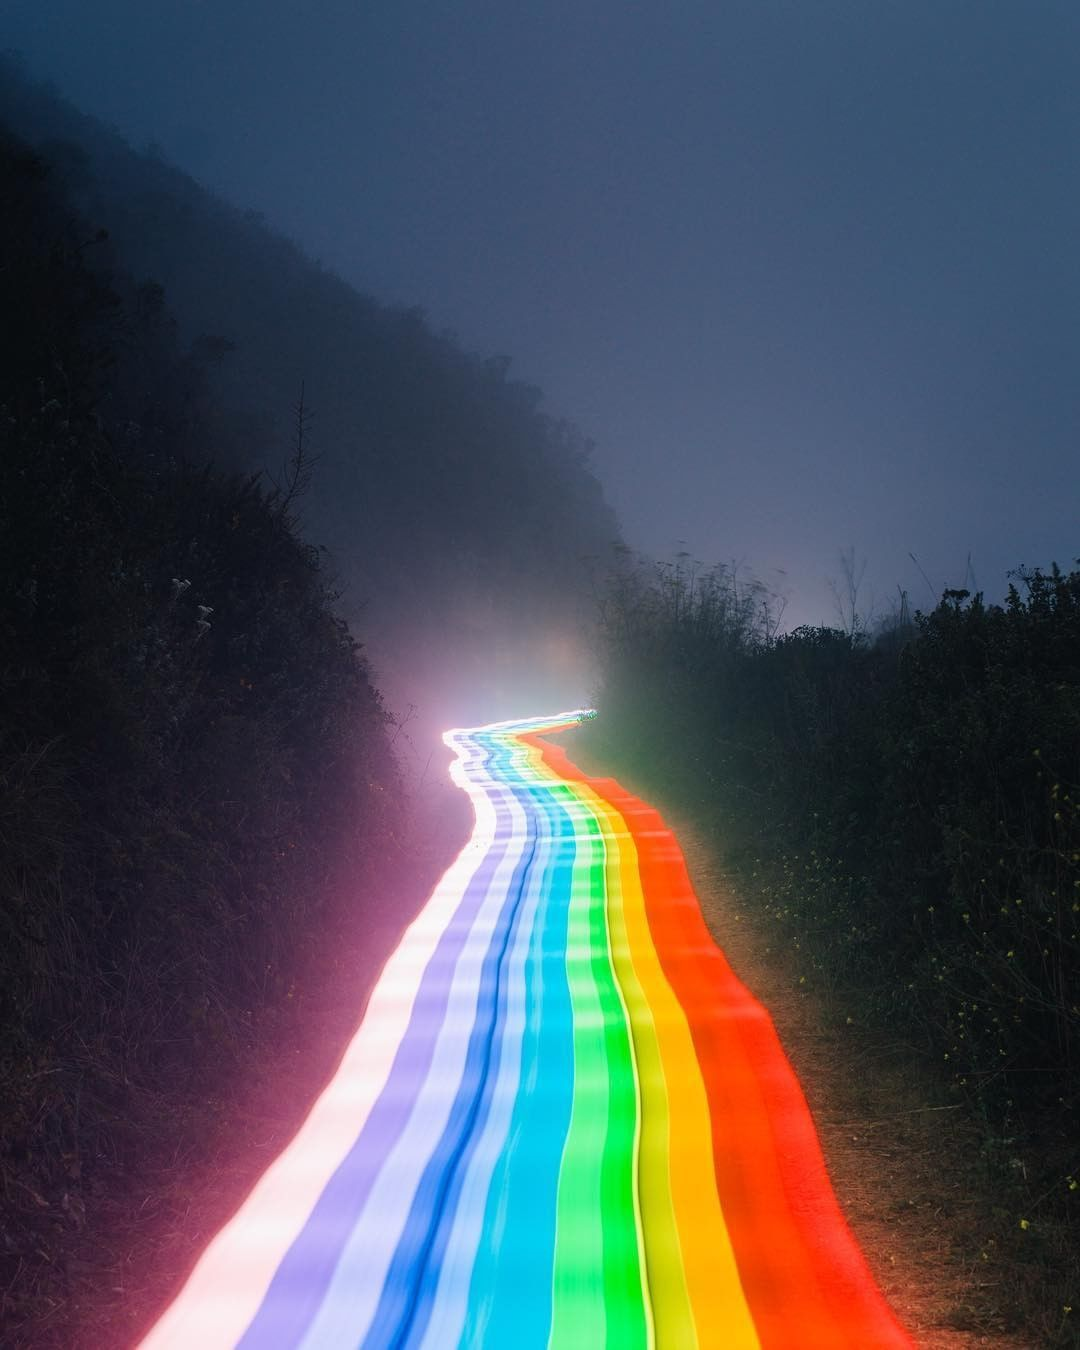 Ban Do On Instagram Follow The Rainbow Road But Seriously We Posted One Of Danielmercadante S Photos Of Rainbow Aesthetic Rainbow Wallpaper Rainbow Road